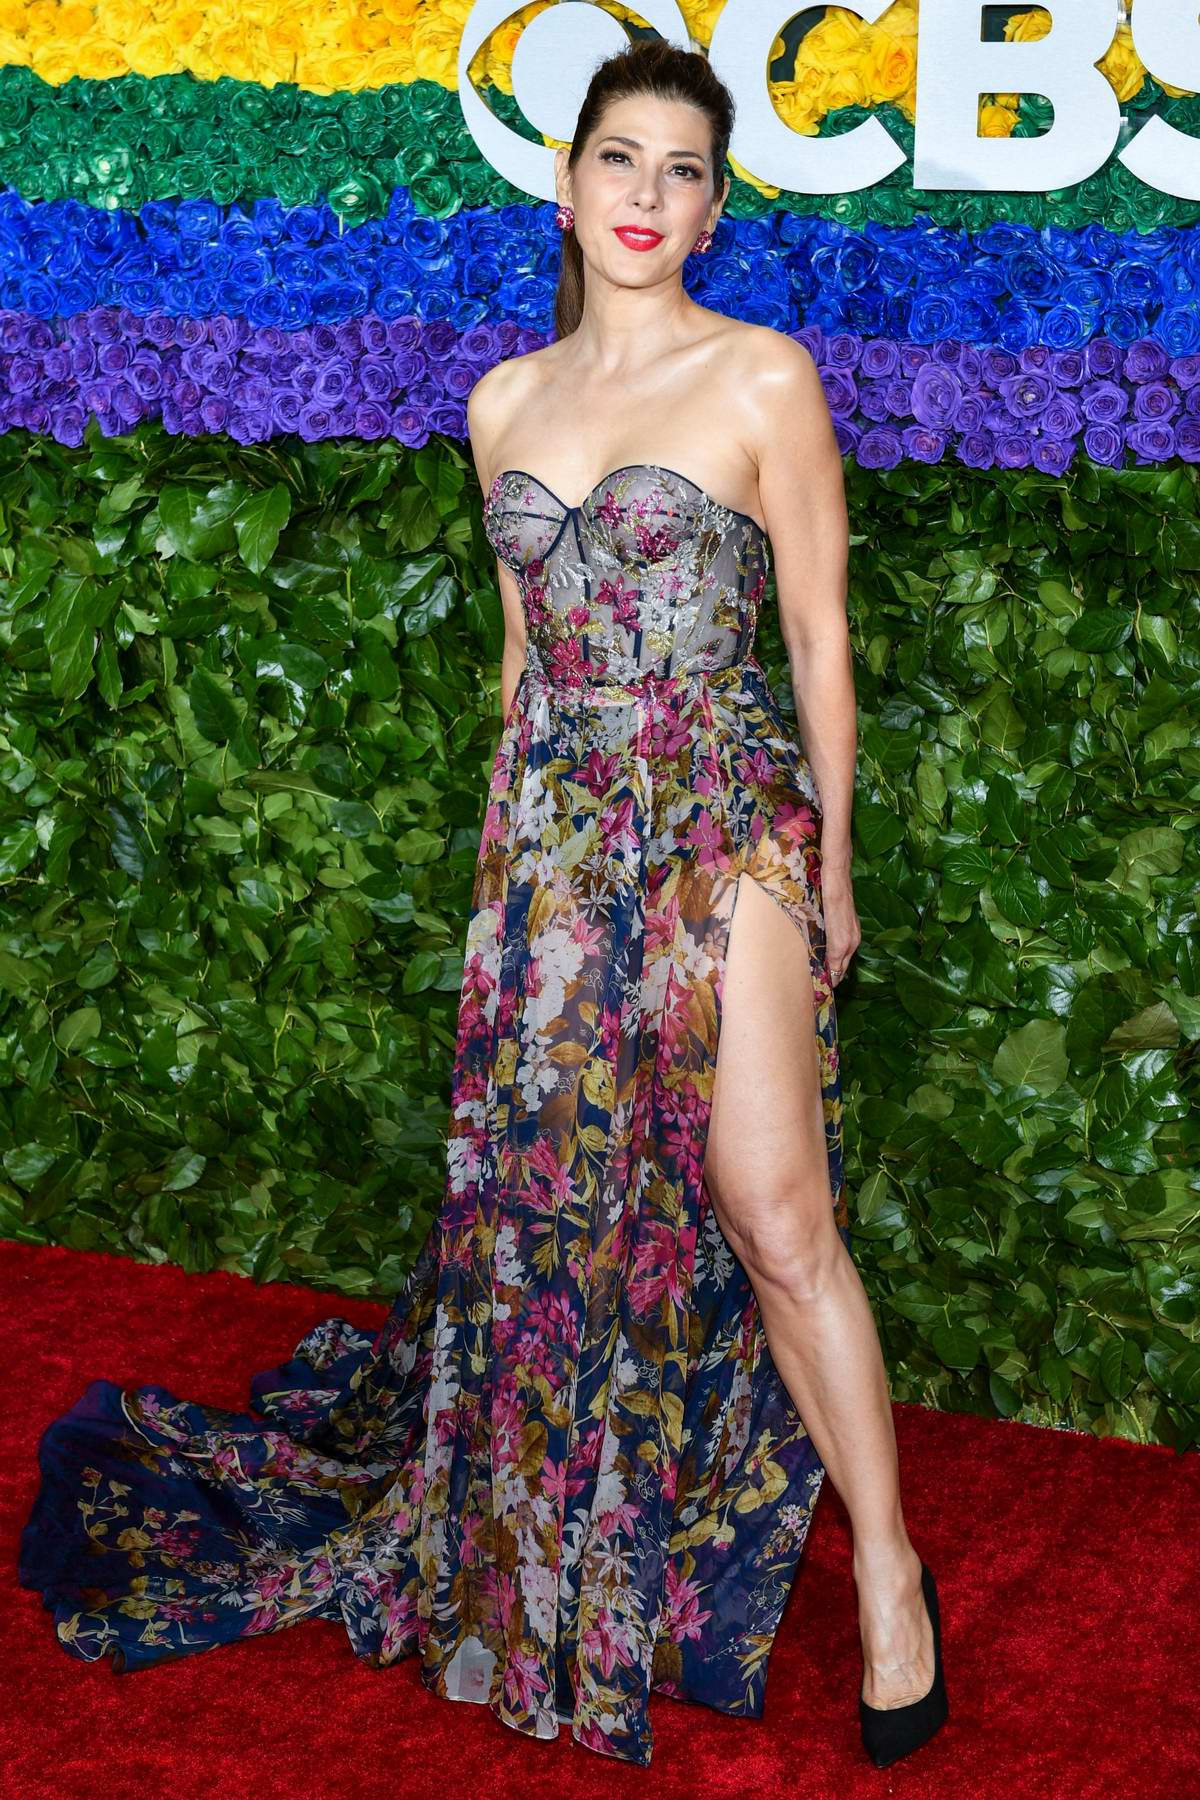 Marisa Tomei attends the 73rd annual Tony Awards at Radio City Music Hall in New York City